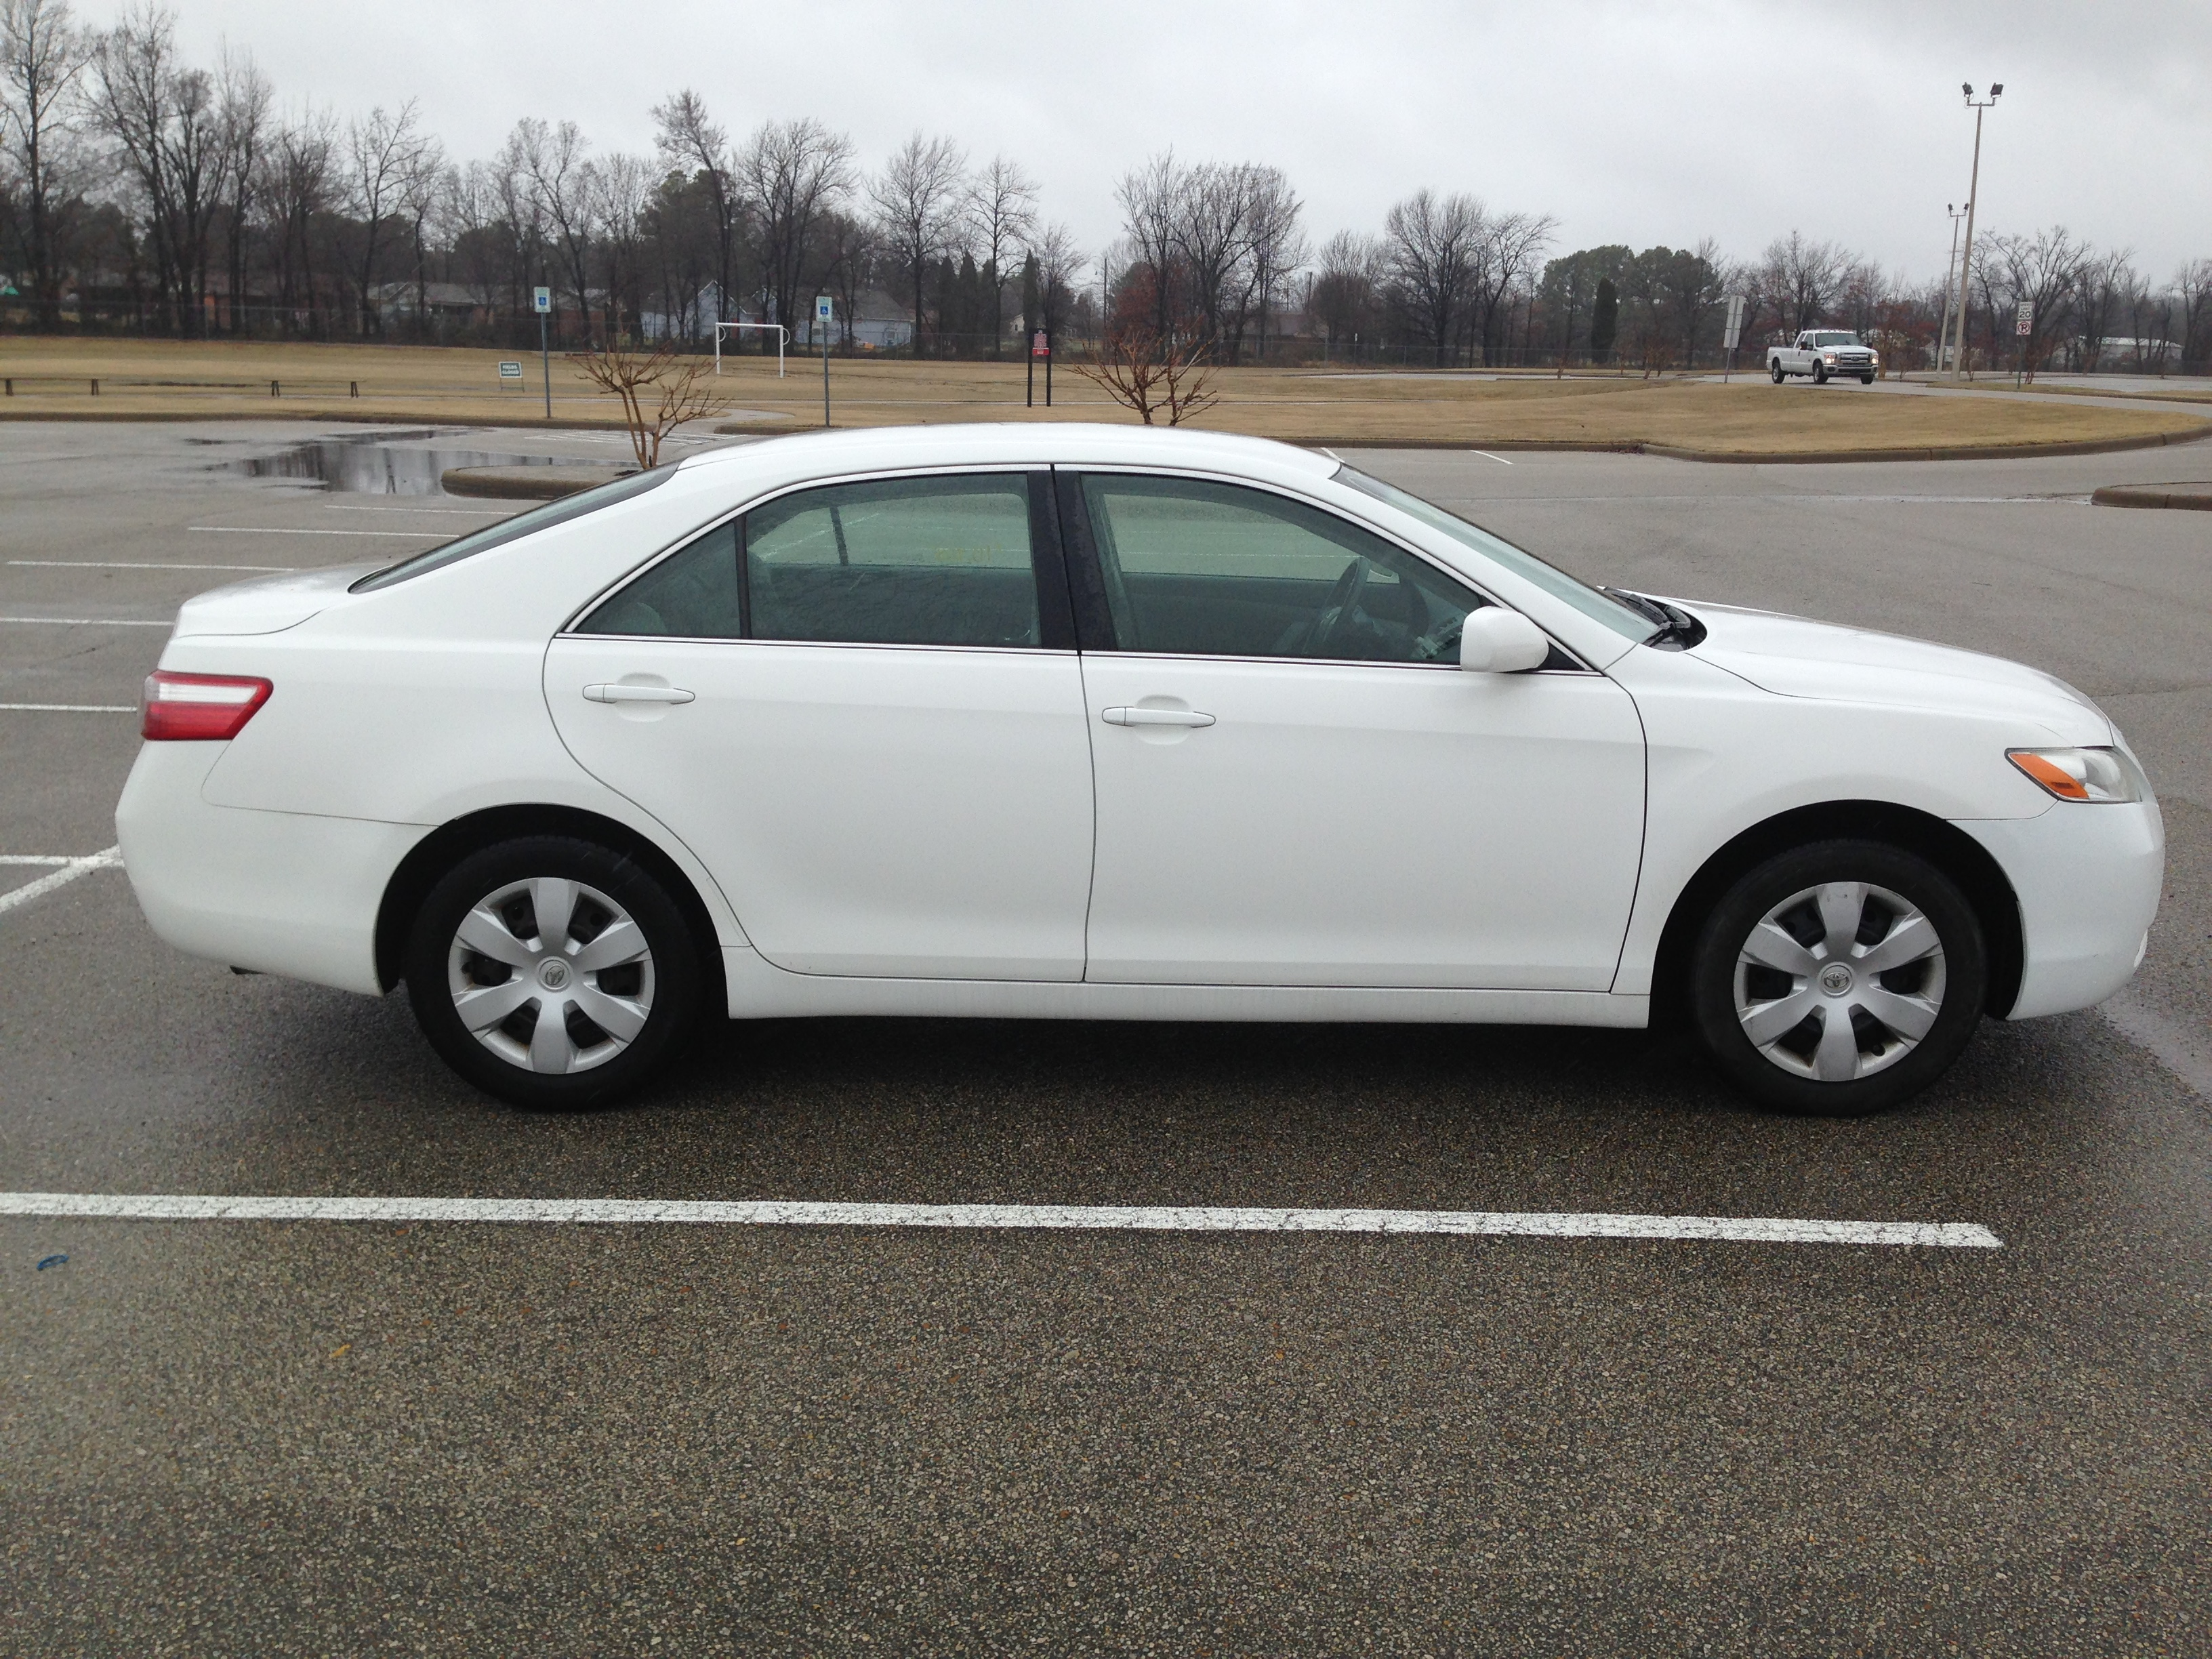 2005 Toyota Camry Le >> White 2007 Toyota Camry | J & L Auto Sales